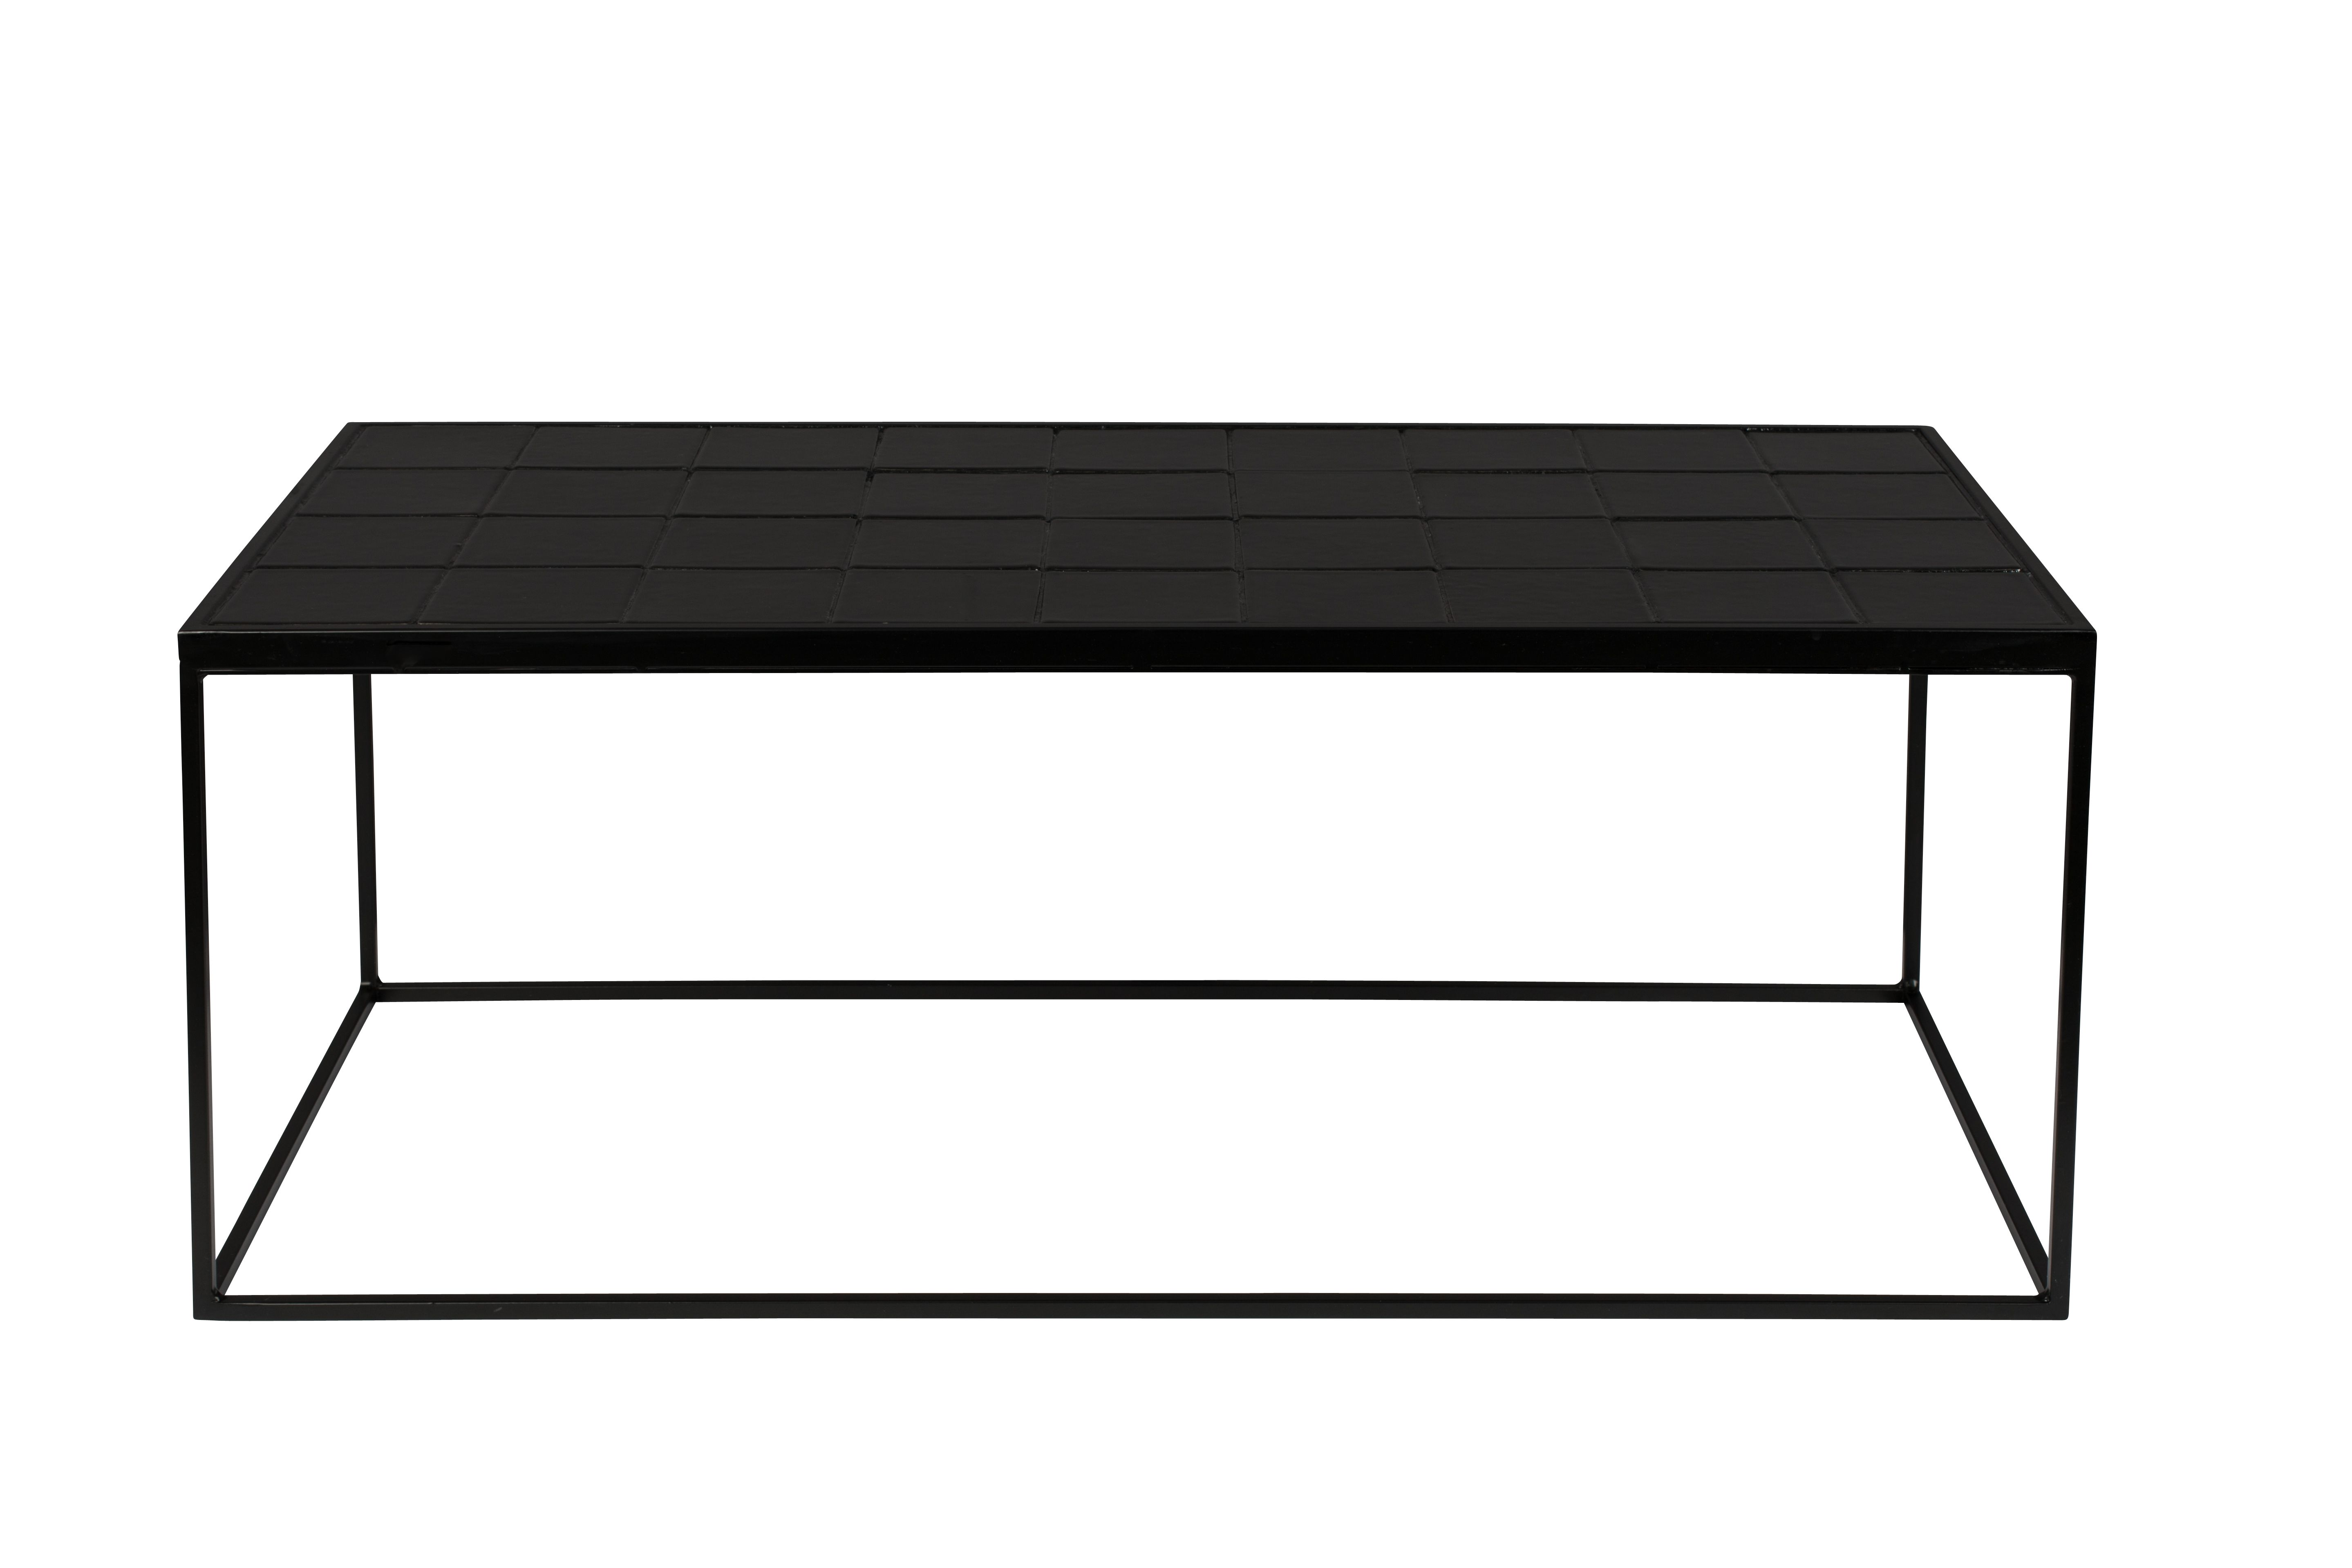 Glazed Coffee Table Zuiver Coffee Table Large Square Coffee Table Black Coffee Tables [ 3837 x 5755 Pixel ]